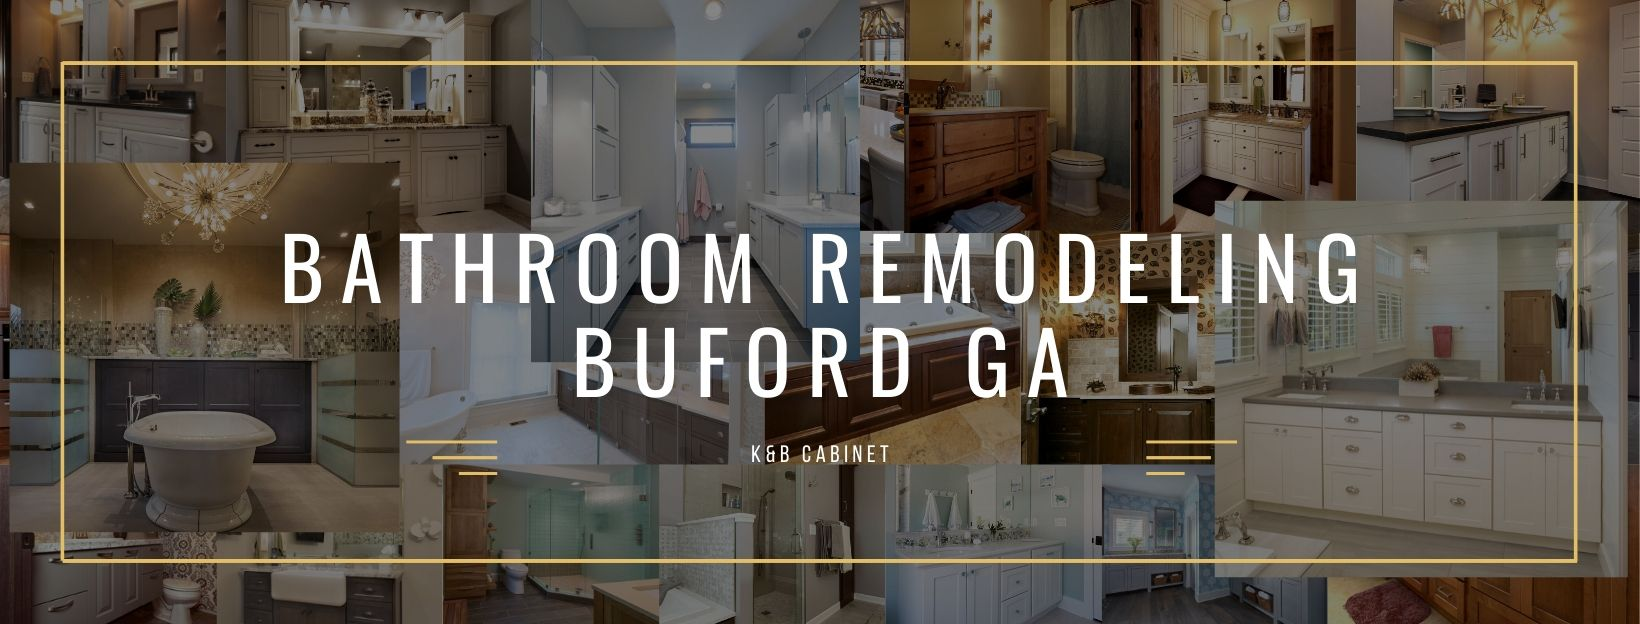 Bathroom Remodeling Buford GA